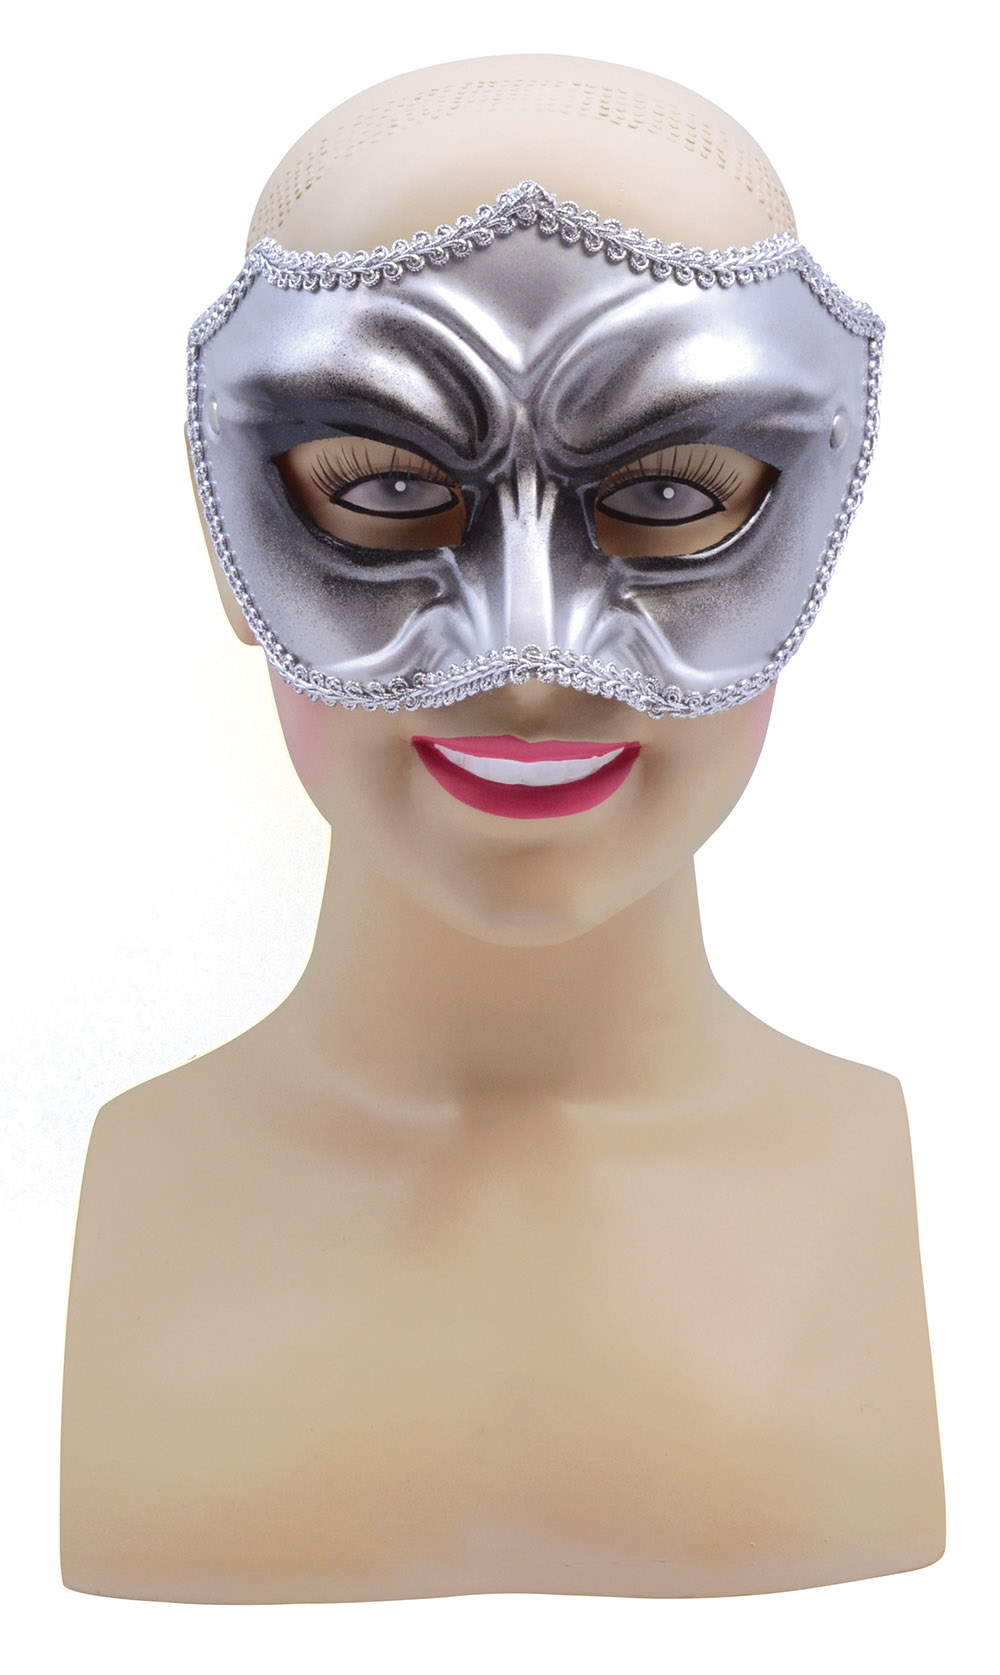 Male Silver & Black Half Face Masquerade Ball Mask Halloween ...